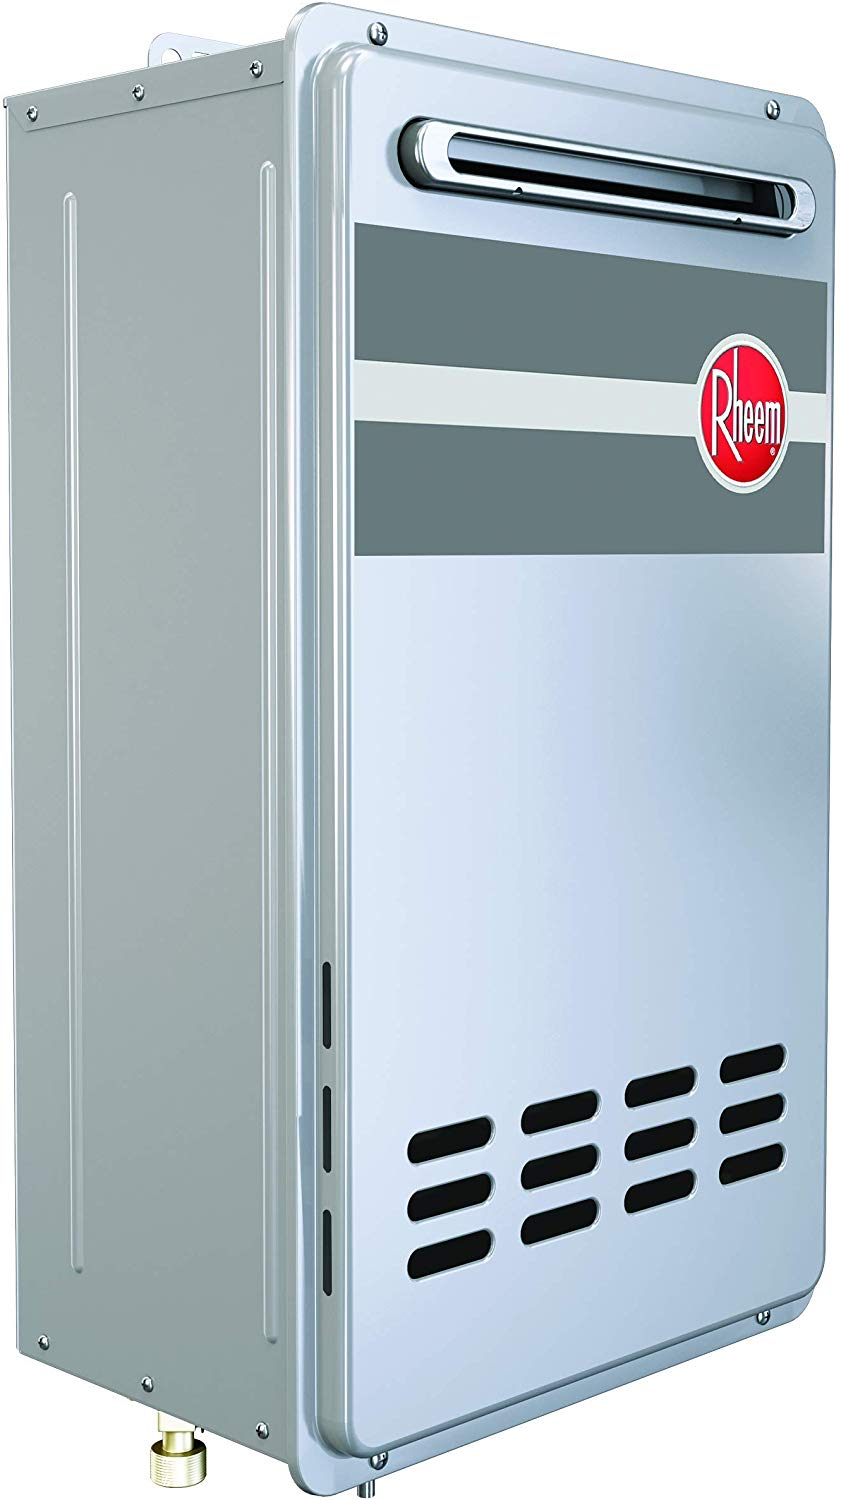 Rheem Tankless Water Heater Outdoors